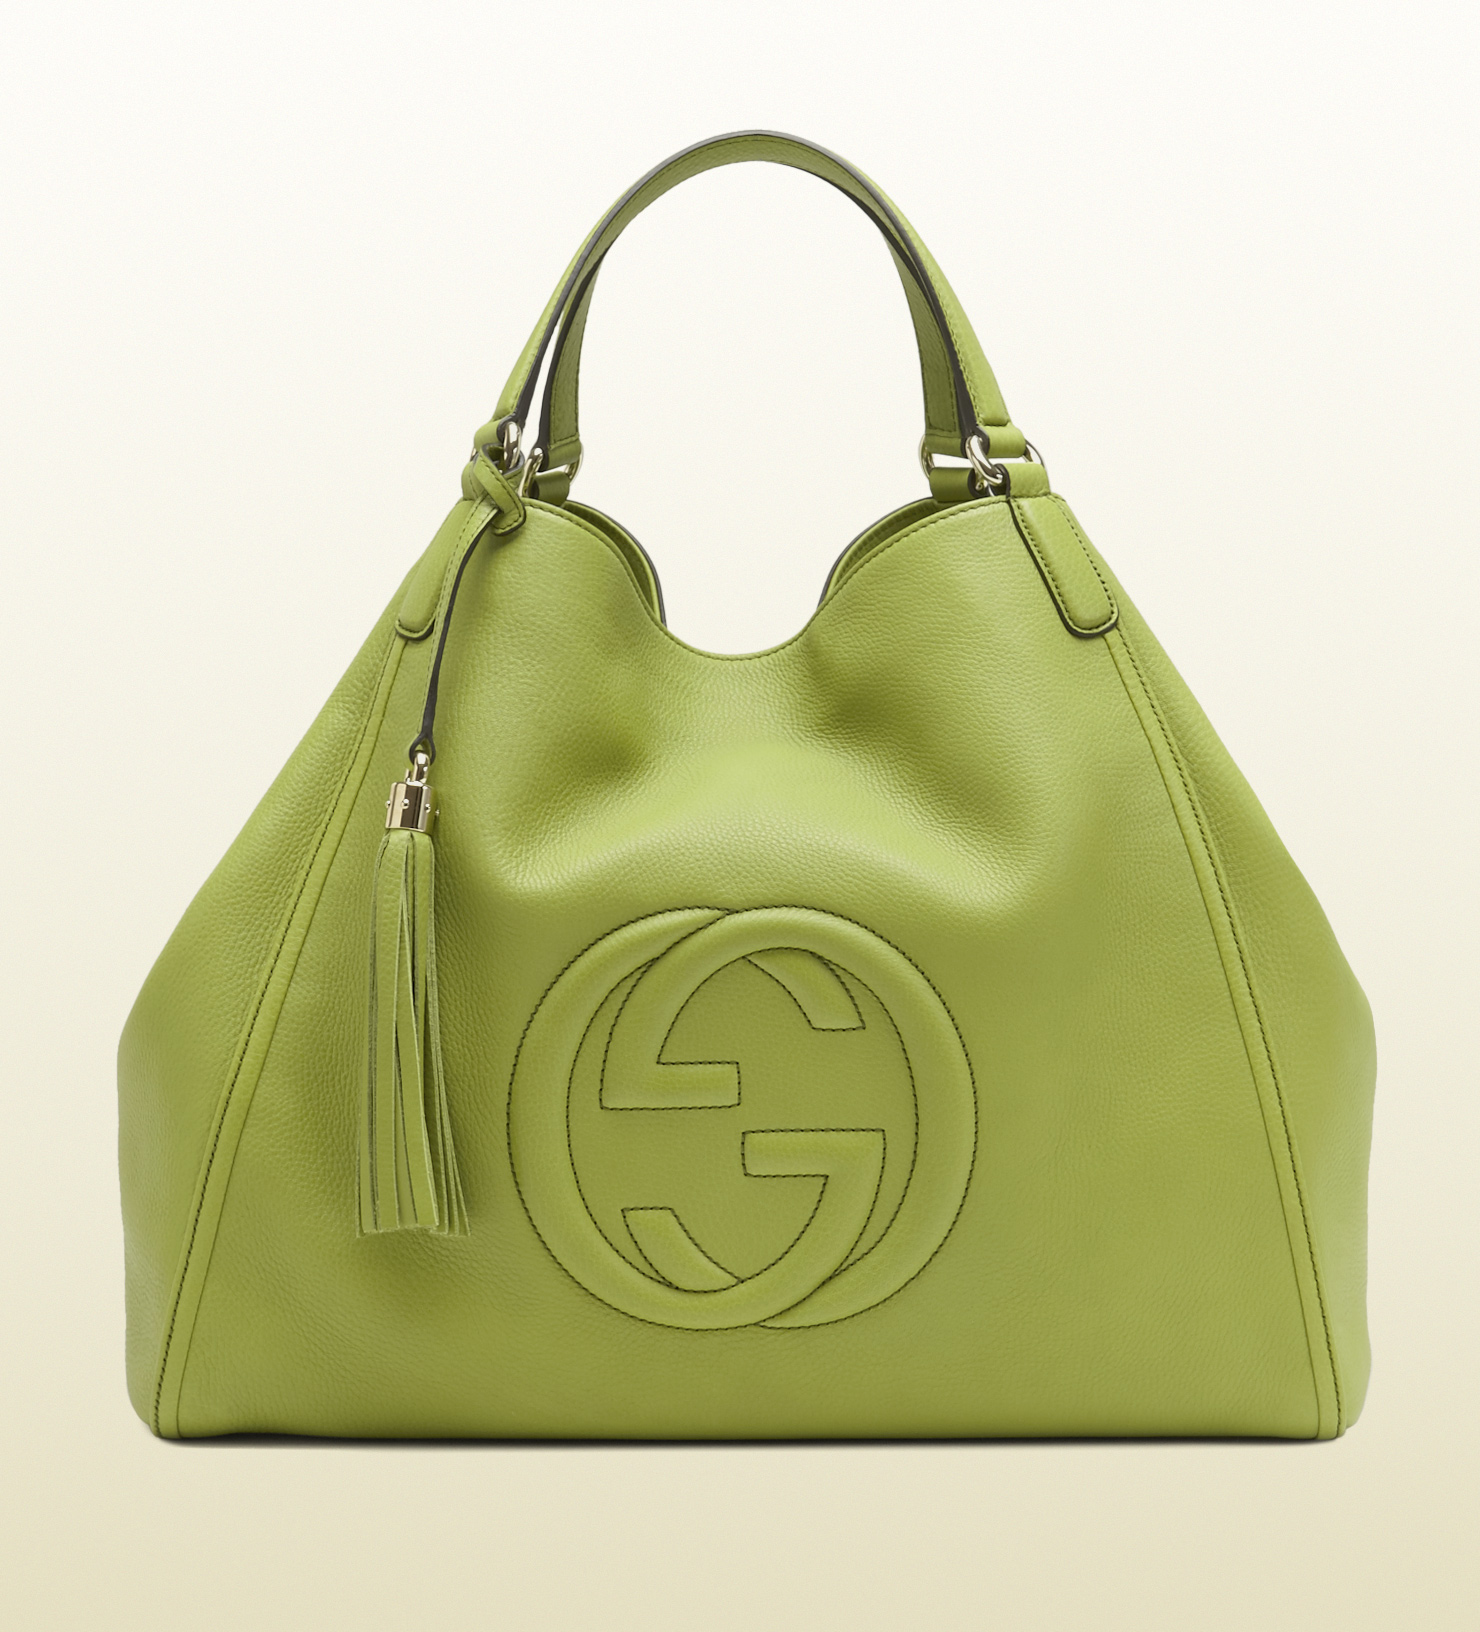 f61f245874e5 Lyst - Gucci Soho Apple Green Leather Shoulder Bag in Green